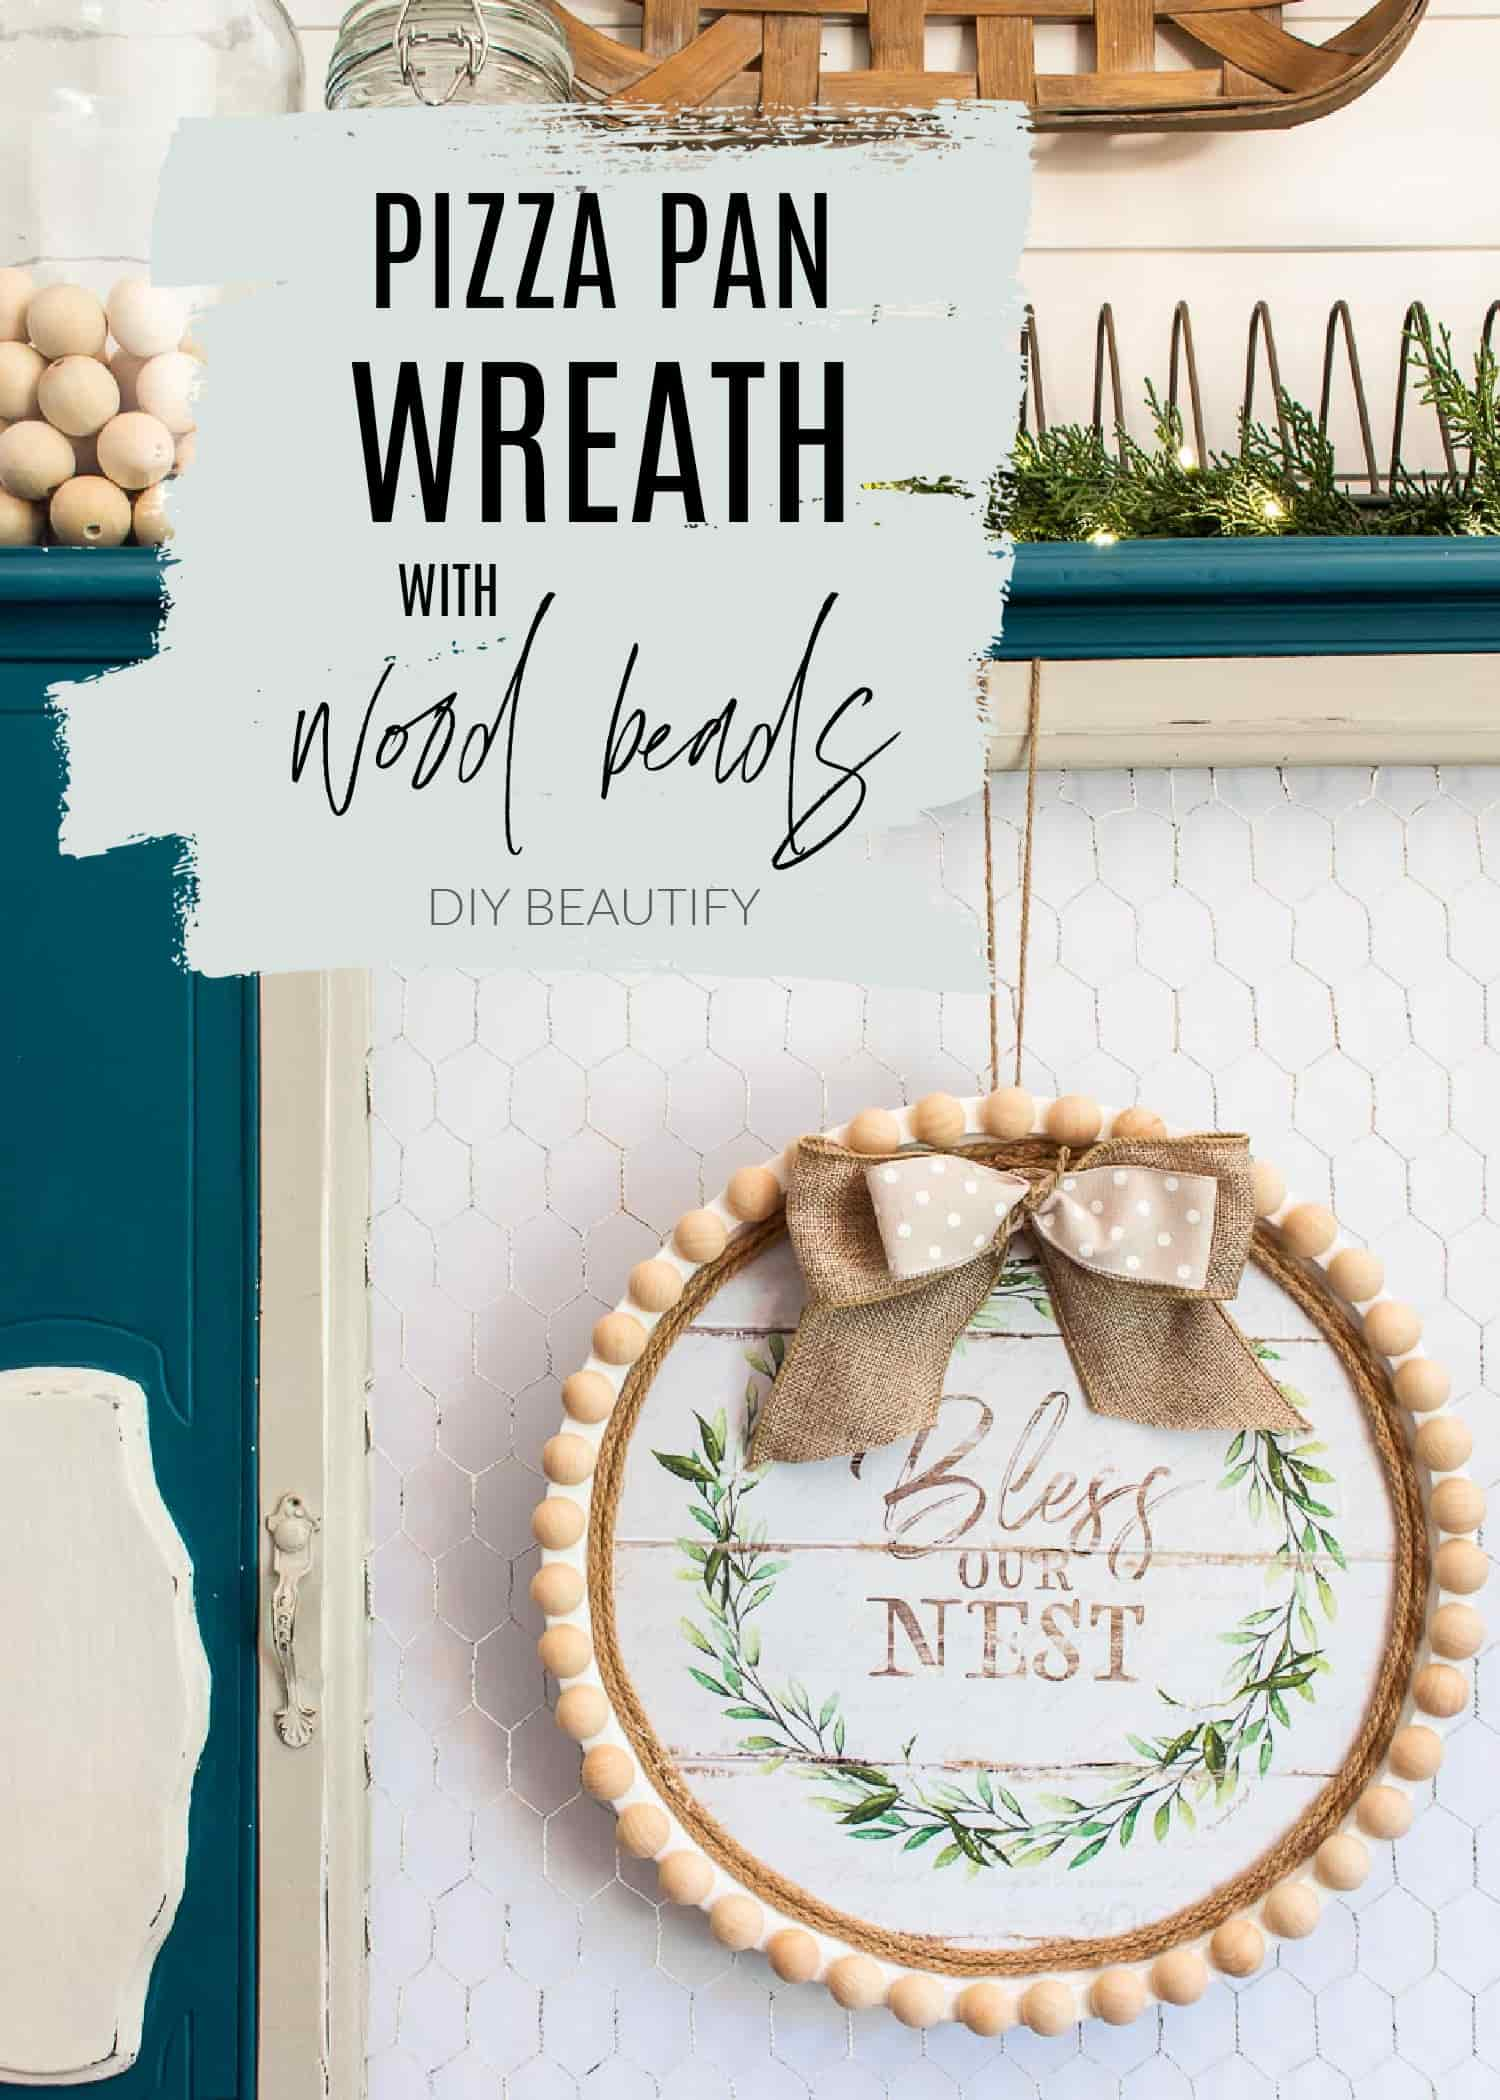 pizza pan wreath wall decor craft with split wood beads